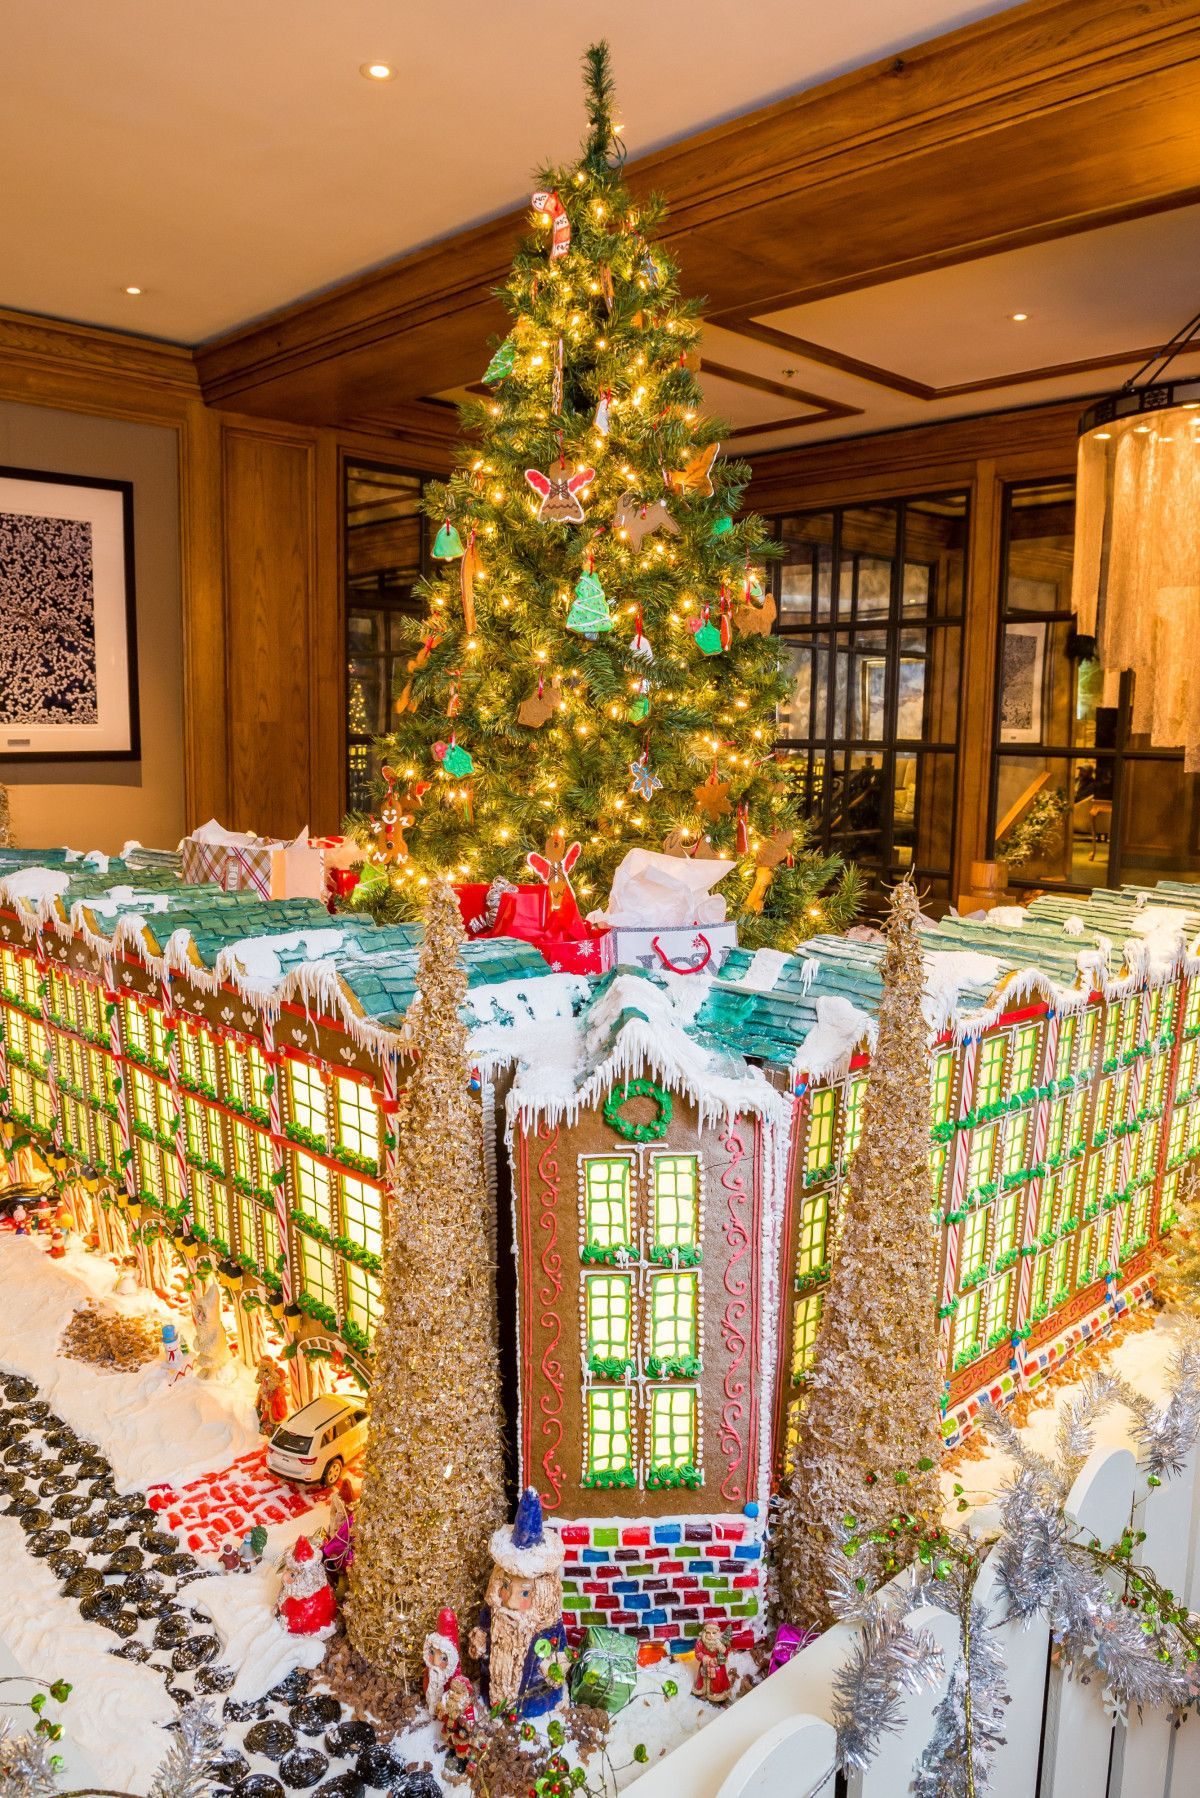 The 17 Best Luxury Christmas Hotels For An Over The Top Holiday Unique Family Vacations Luxury Family Holidays Florida Christmas